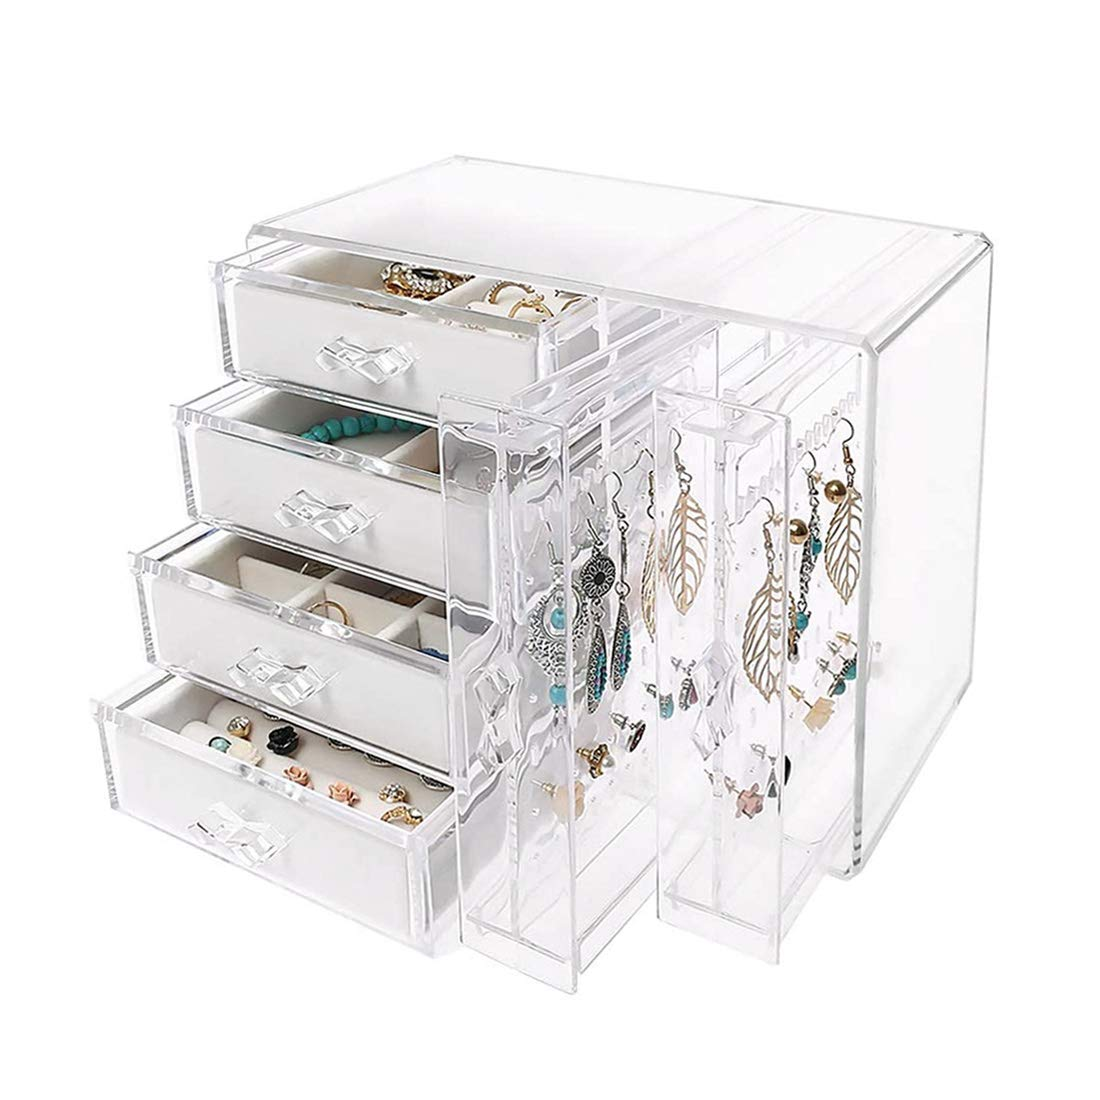 Jenseits Clear Jewelry Organizer Box Earrings Display Storage Case Acrylic Jewelry Box For Women Girls 2 Earrings Hanging Vertical Drawers And 4 Ice Velvet Drawers For Ring Necklace Bracelet